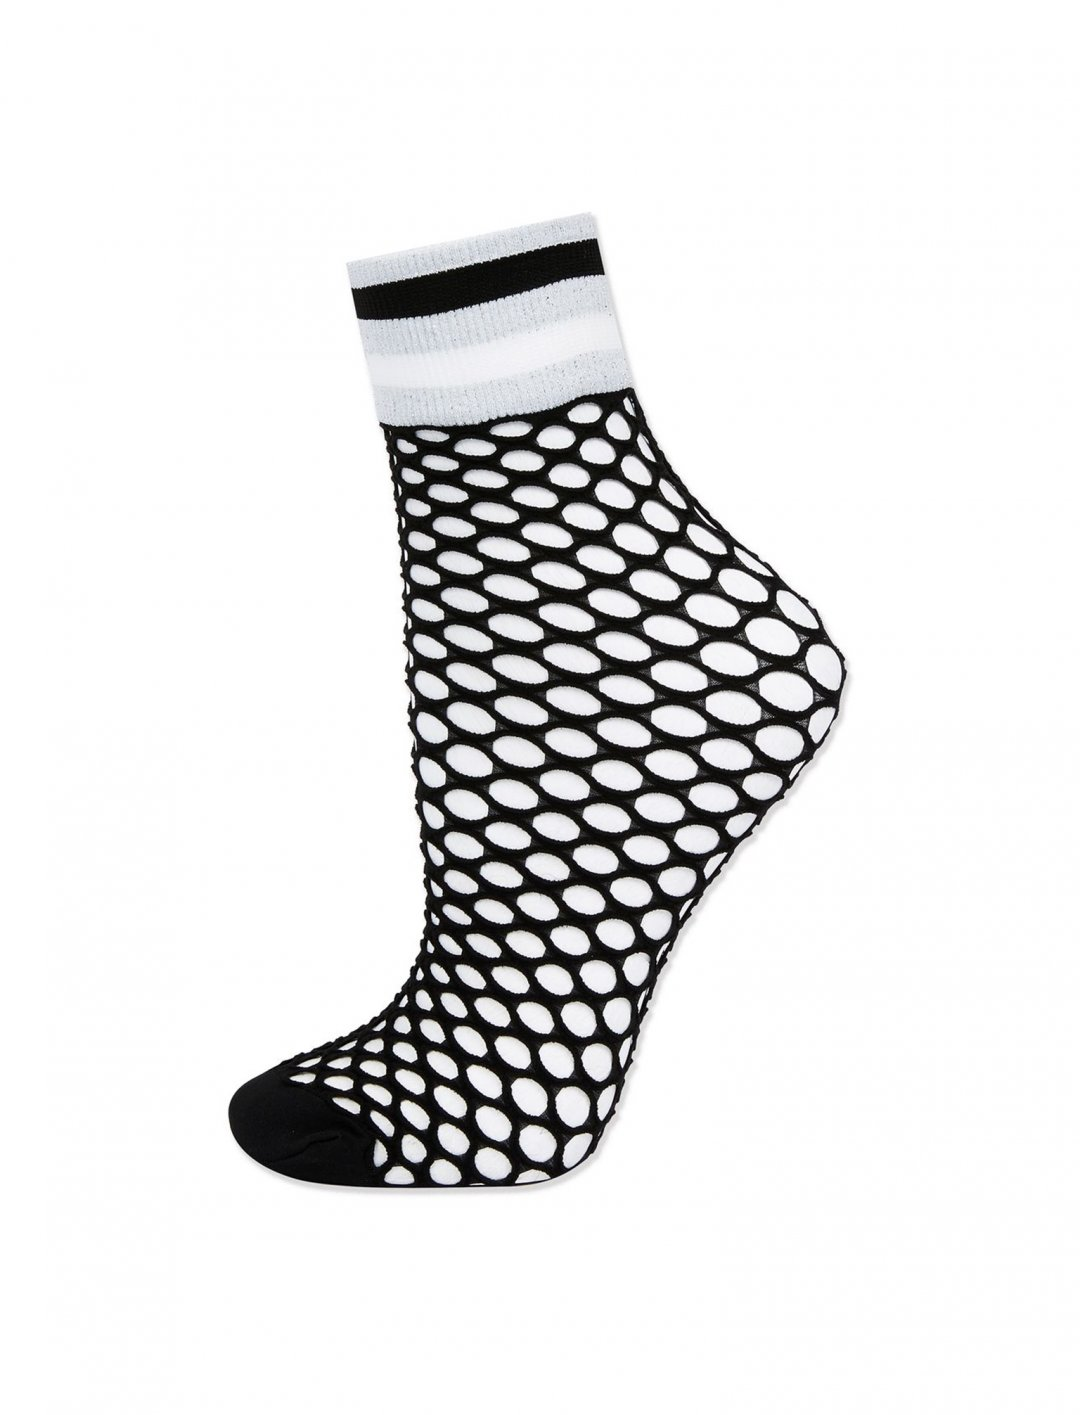 "Topshop Fishnet Socks {""id"":5,""product_section_id"":1,""name"":""Clothing"",""order"":5} Topshop"